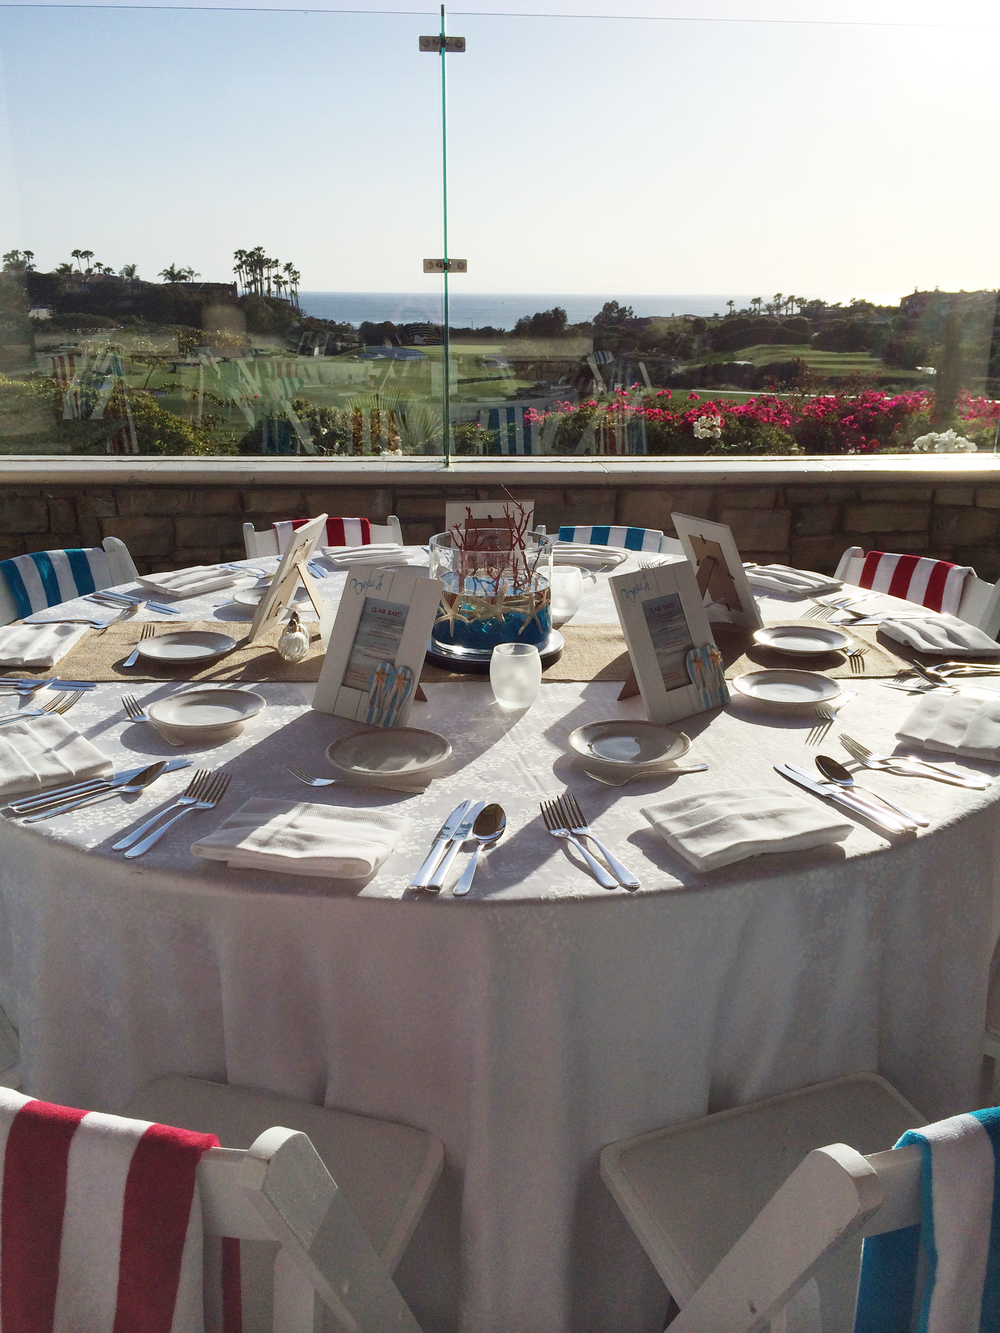 Chairmanu0027s Roundtable Sales Incentive May 2014 Monarch Beach Resort Dana  Point, California